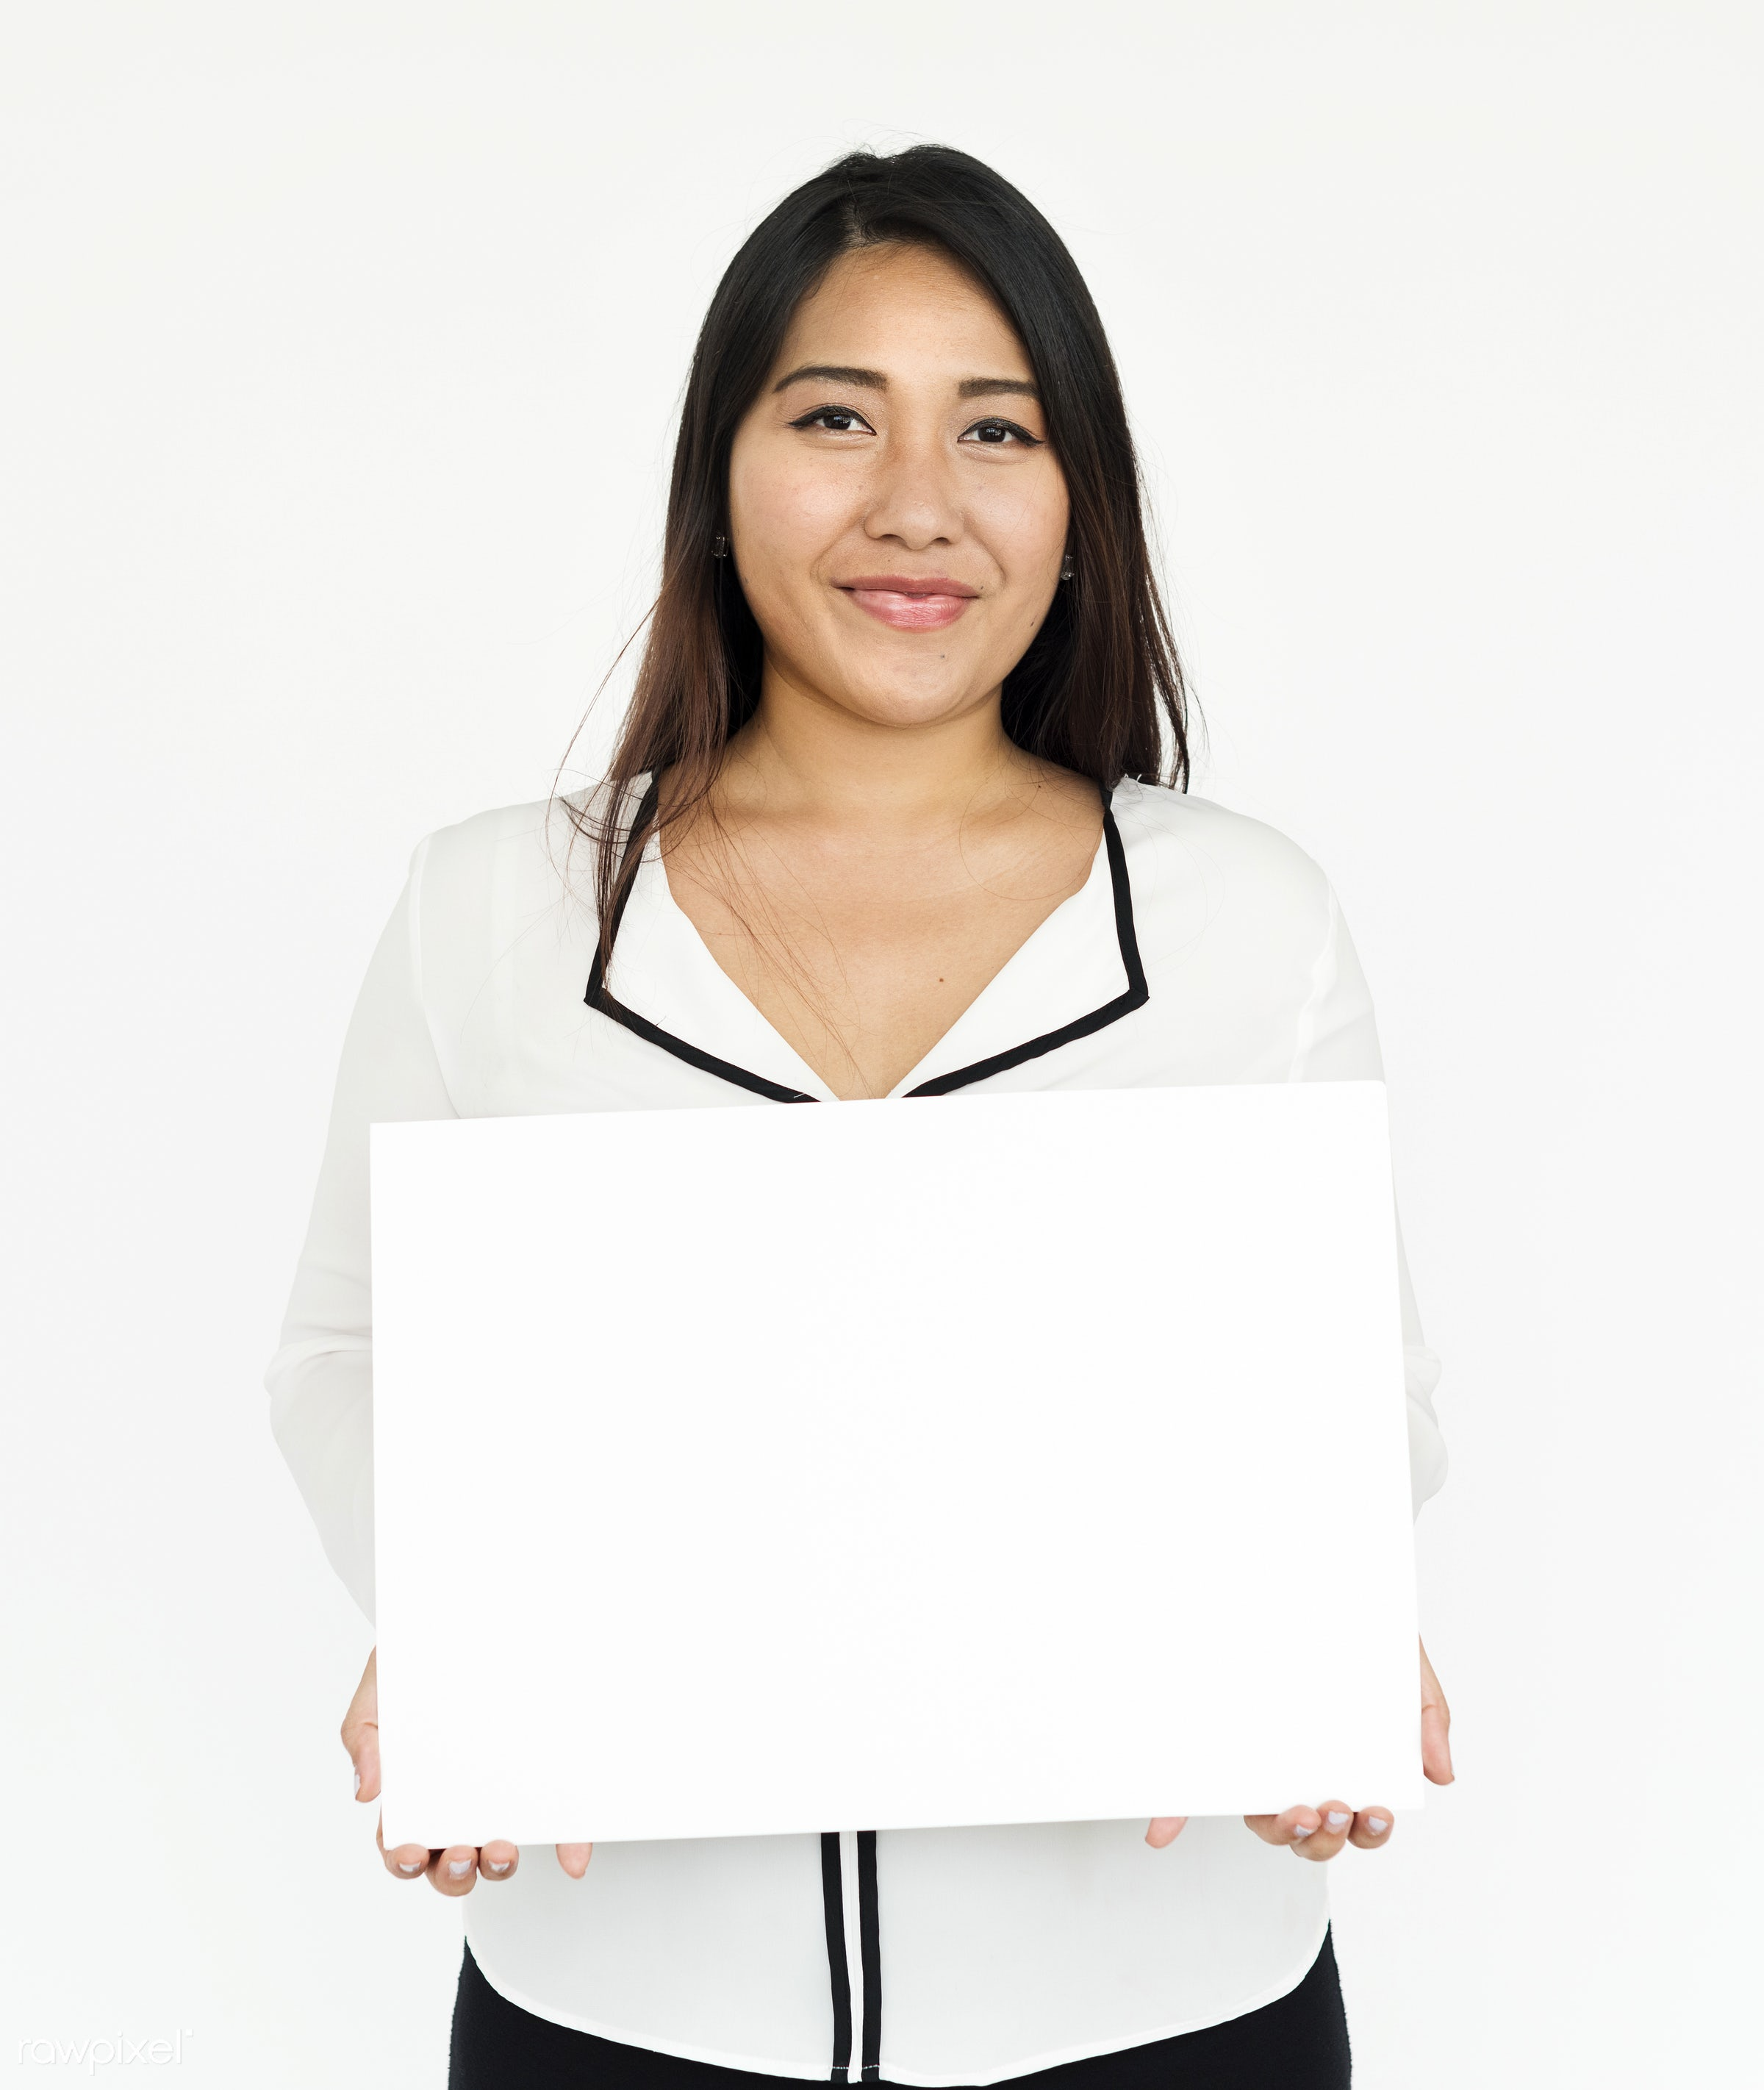 studio, person, holding, show, people, displaying, placard, woman, empty, smile, positive, cheerful, smiling, copy, isolated...